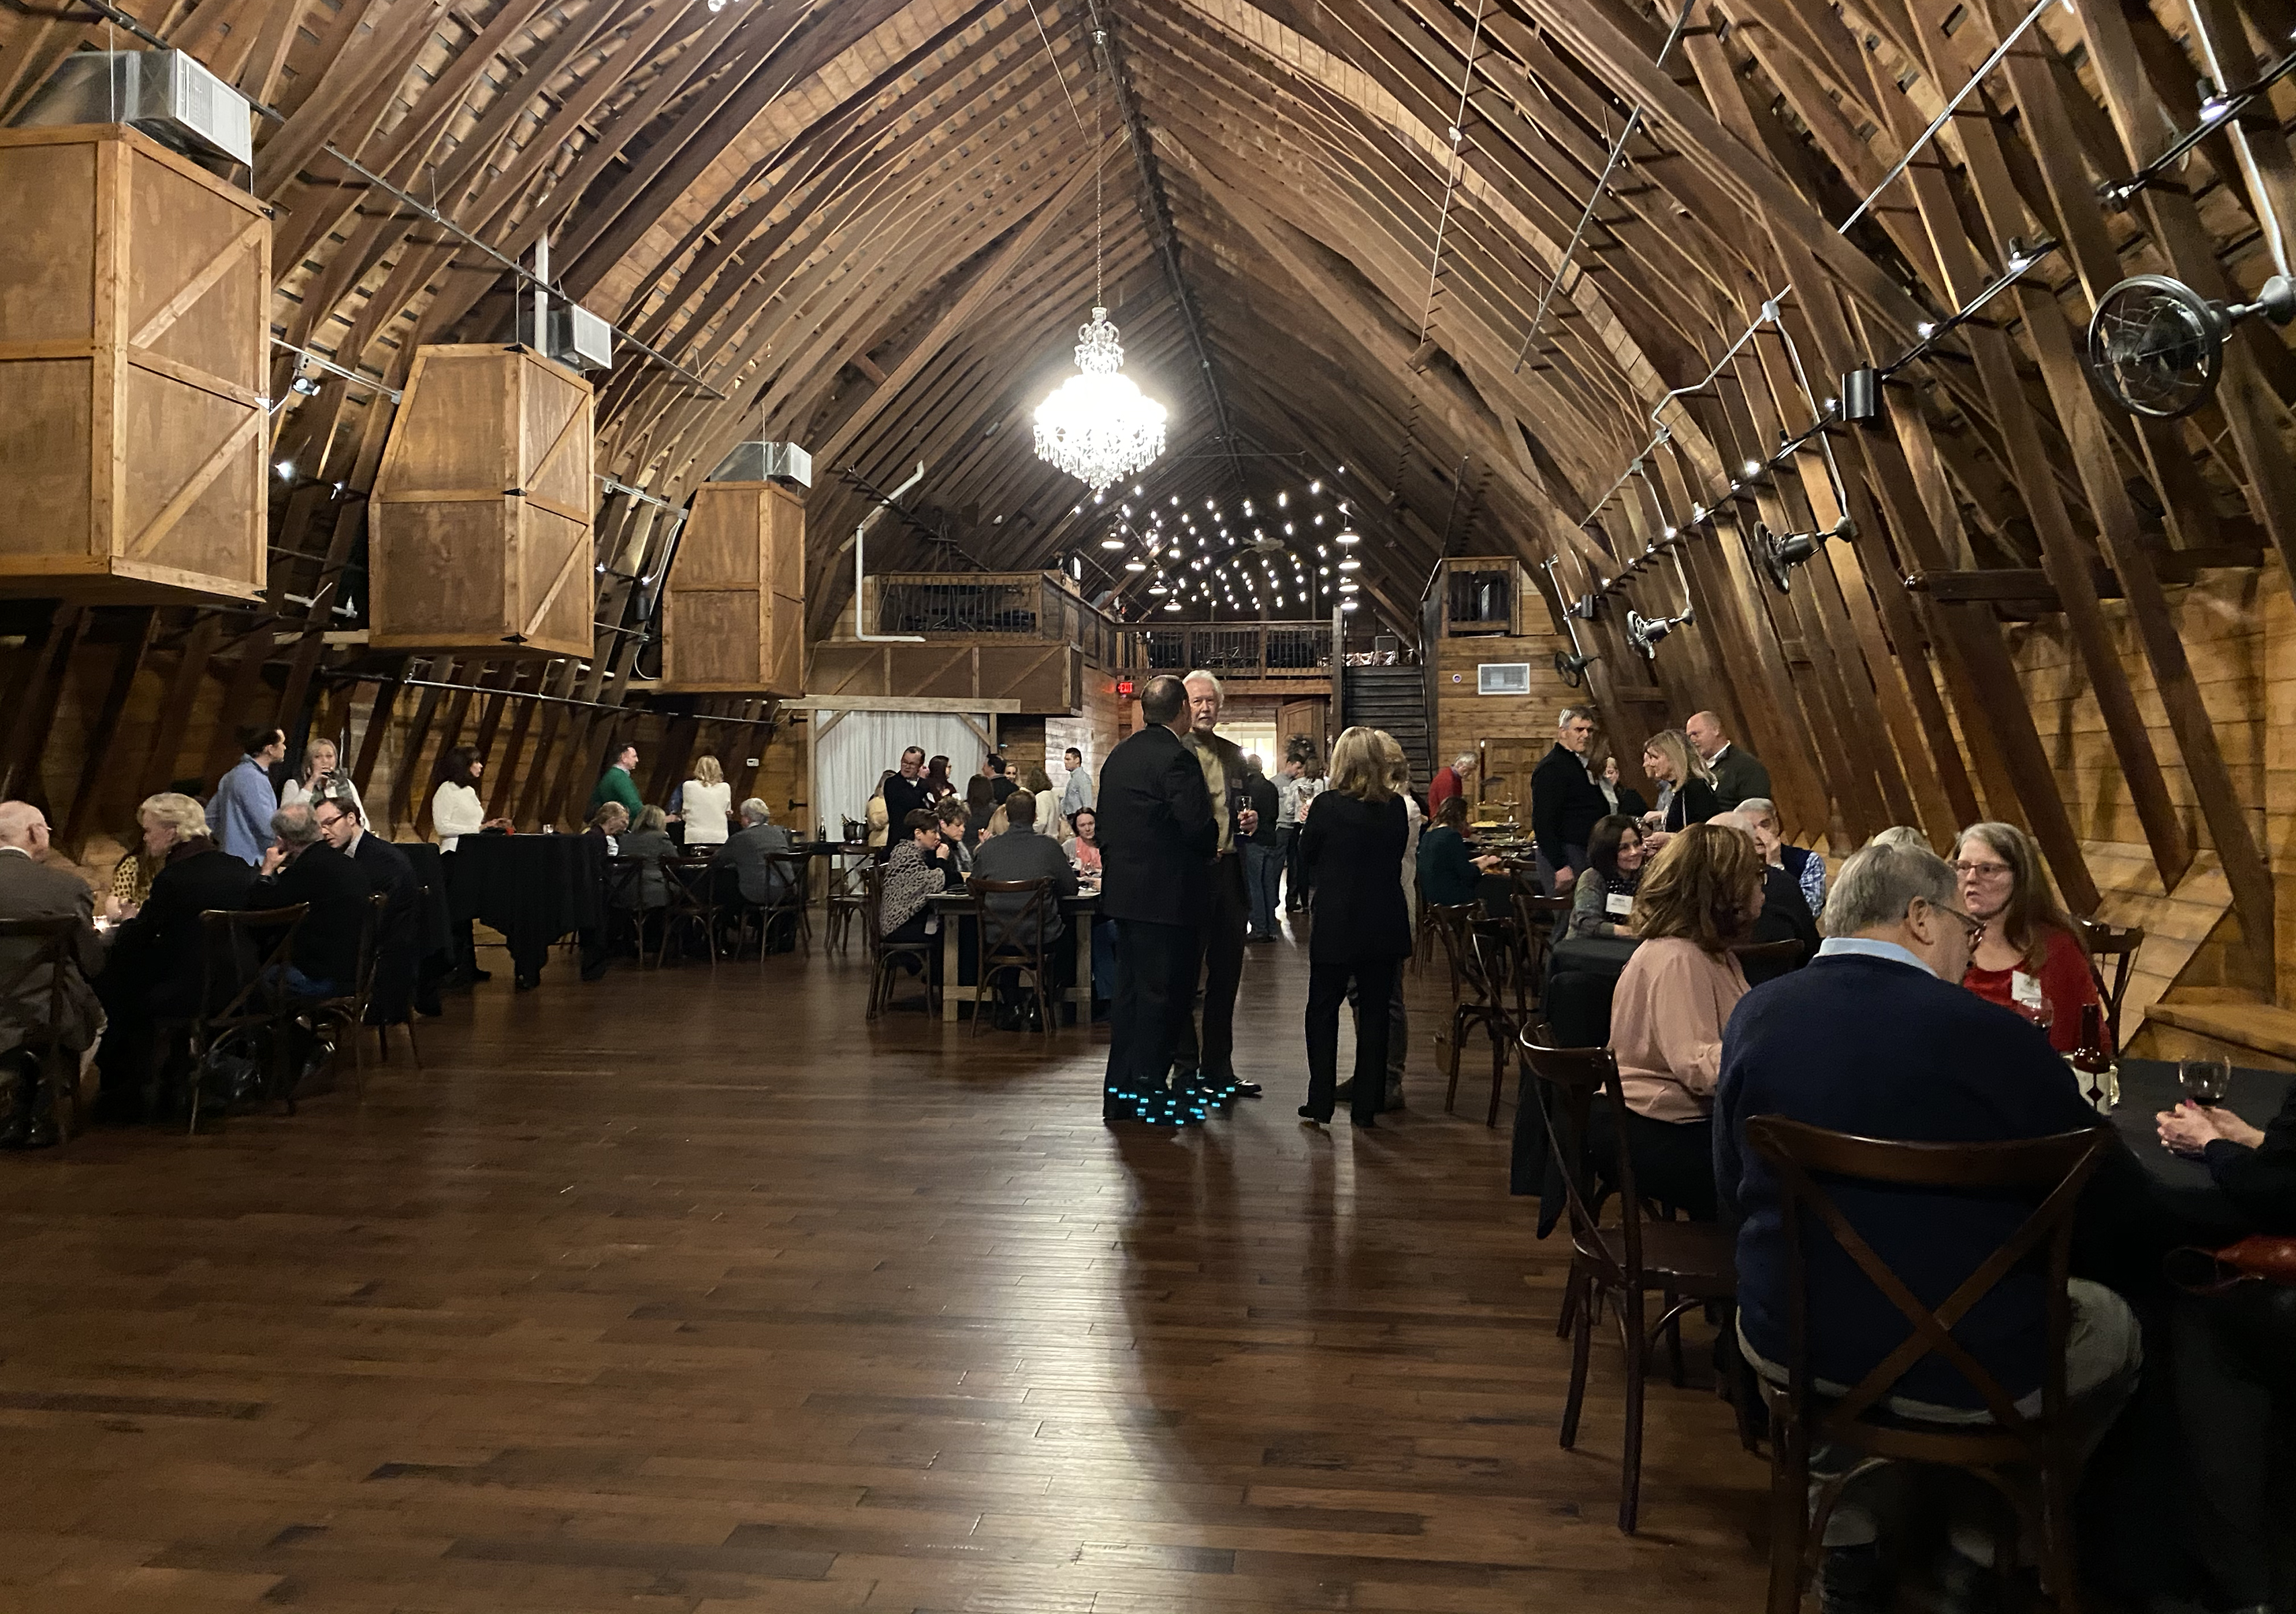 Omaha Bar Association members and their guests filled The Bar at Ackerhurst Dairy Farm for the 20th annual OBA Wine Tasting event Friday, Jan. 24, 2020. (Photo by Scott Stewart)